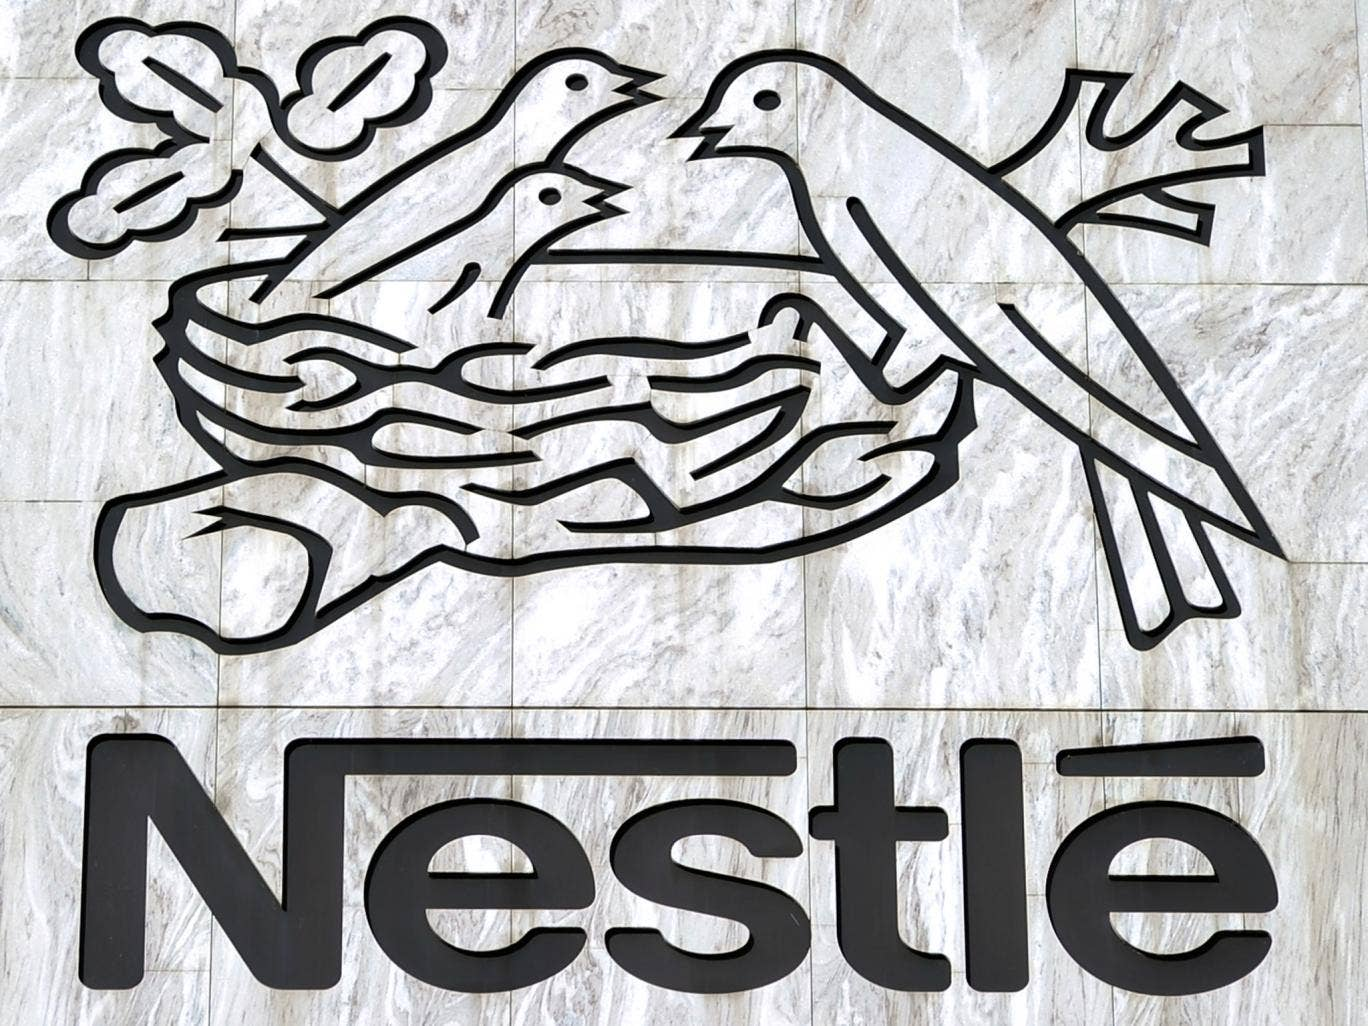 Swiss-based Nestle, which just last week said its products had not been affected by the scandal, said its tests had found more than 1 per cent horse DNA in two products